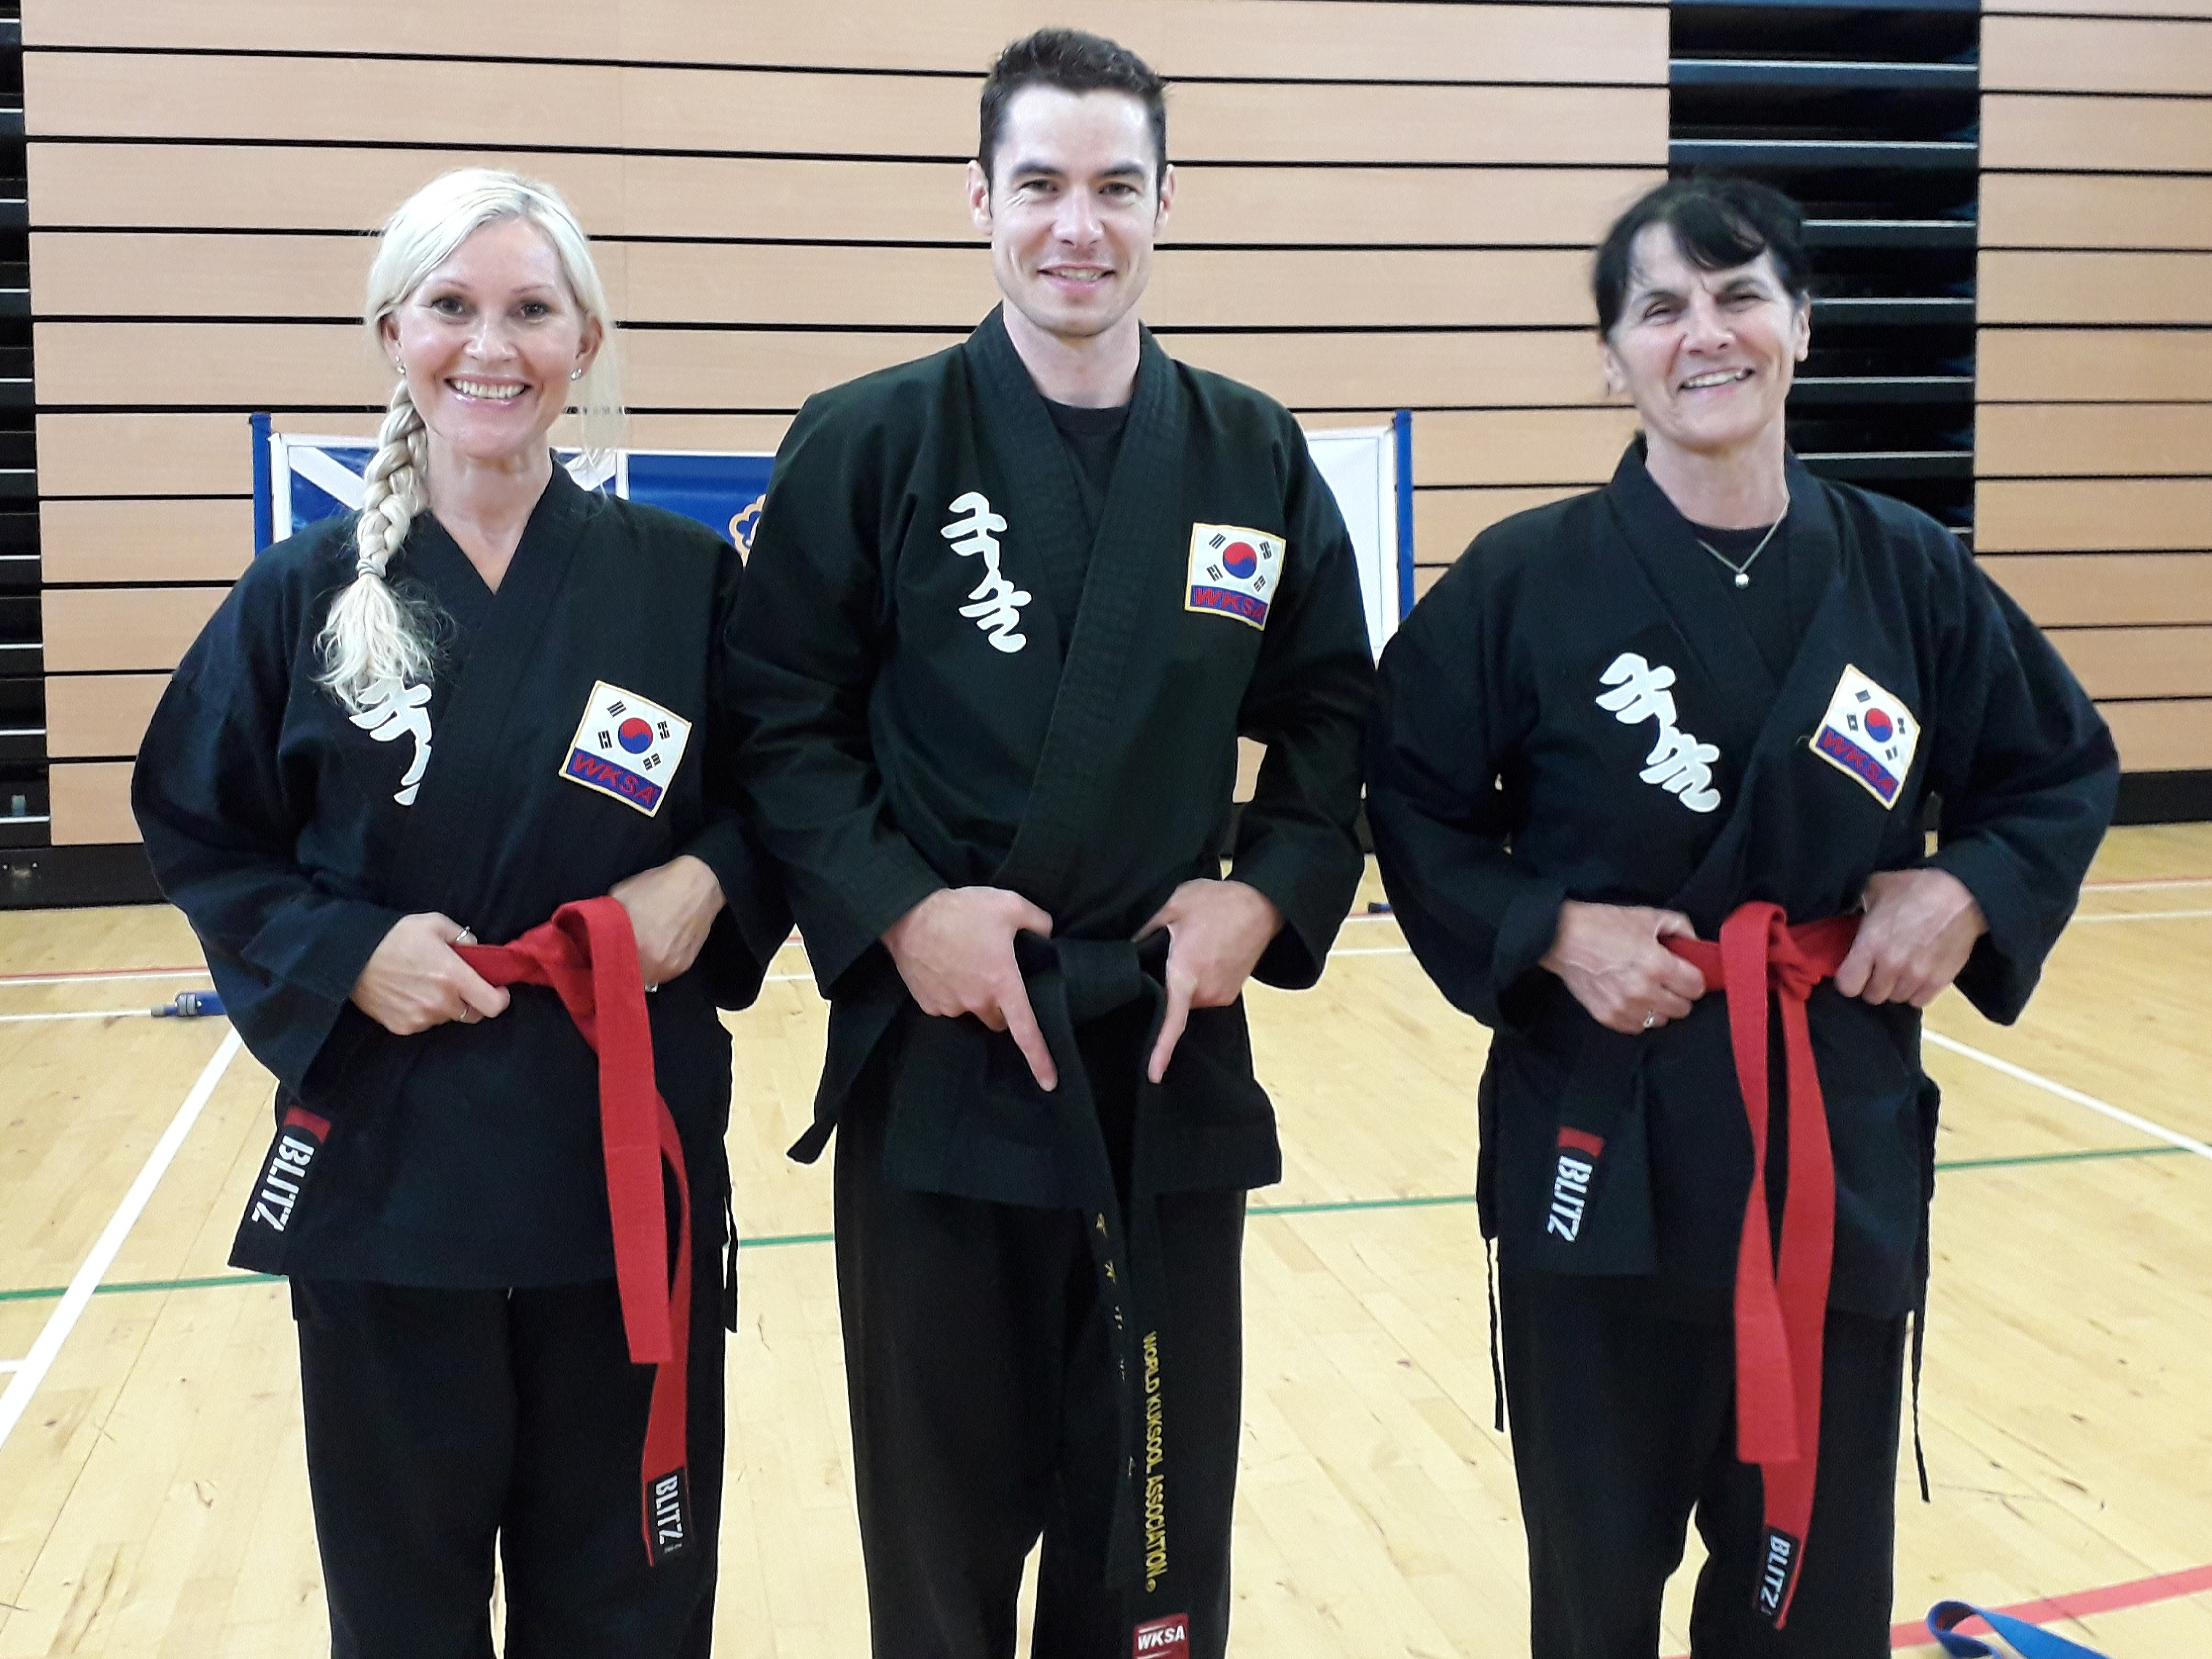 Kuk Sool Won Perth martial arts (7)